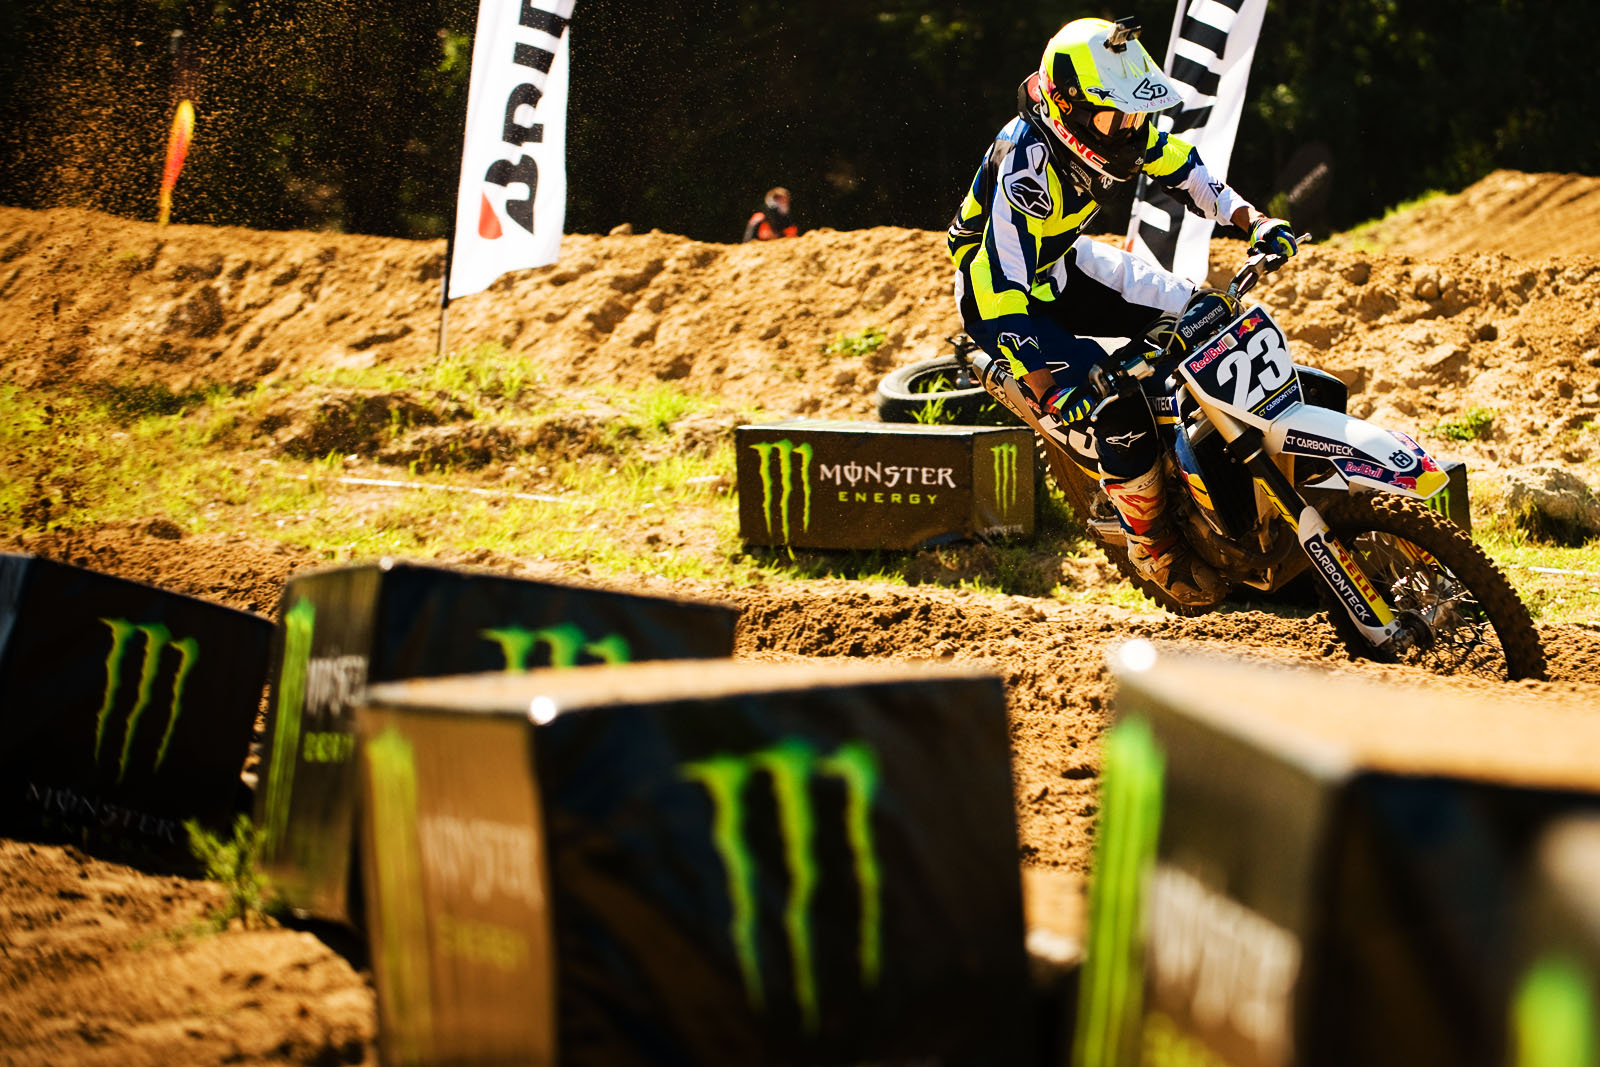 Anthony Raynard racing his way to victory in the MX2 class